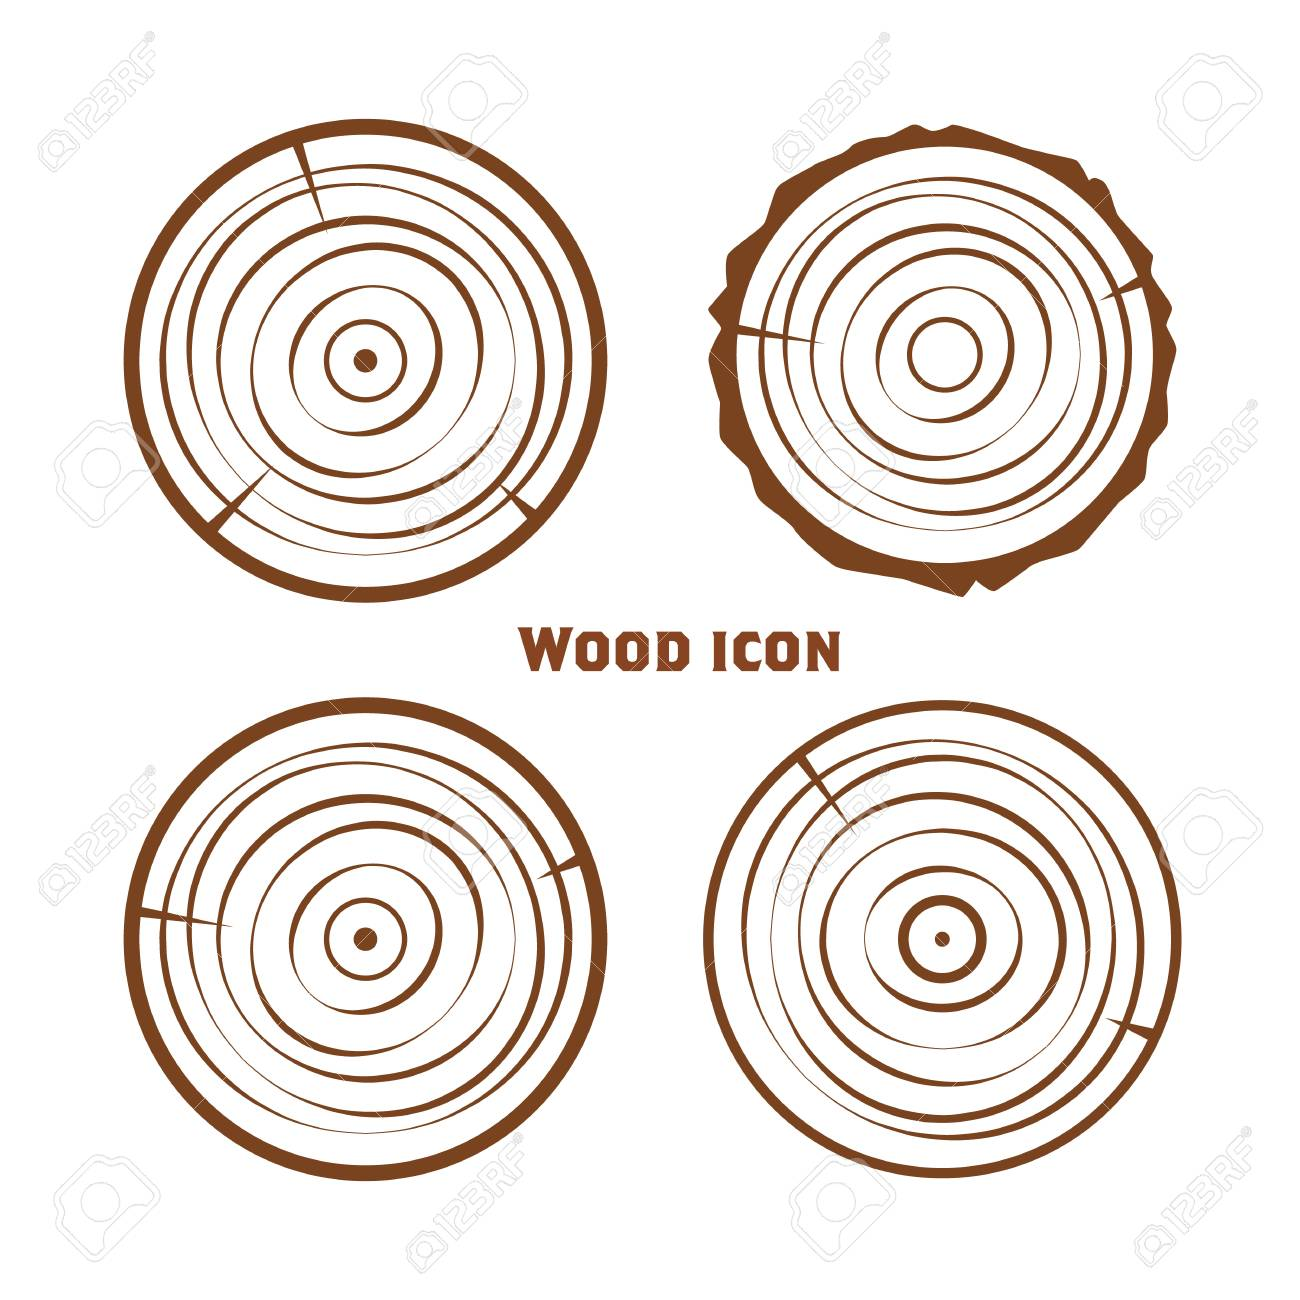 Wooden Icons Vector Wooden Sawn Rings Cut Sections Of Trunk Royalty Free Cliparts Vectors And Stock Illustration Image 104025916